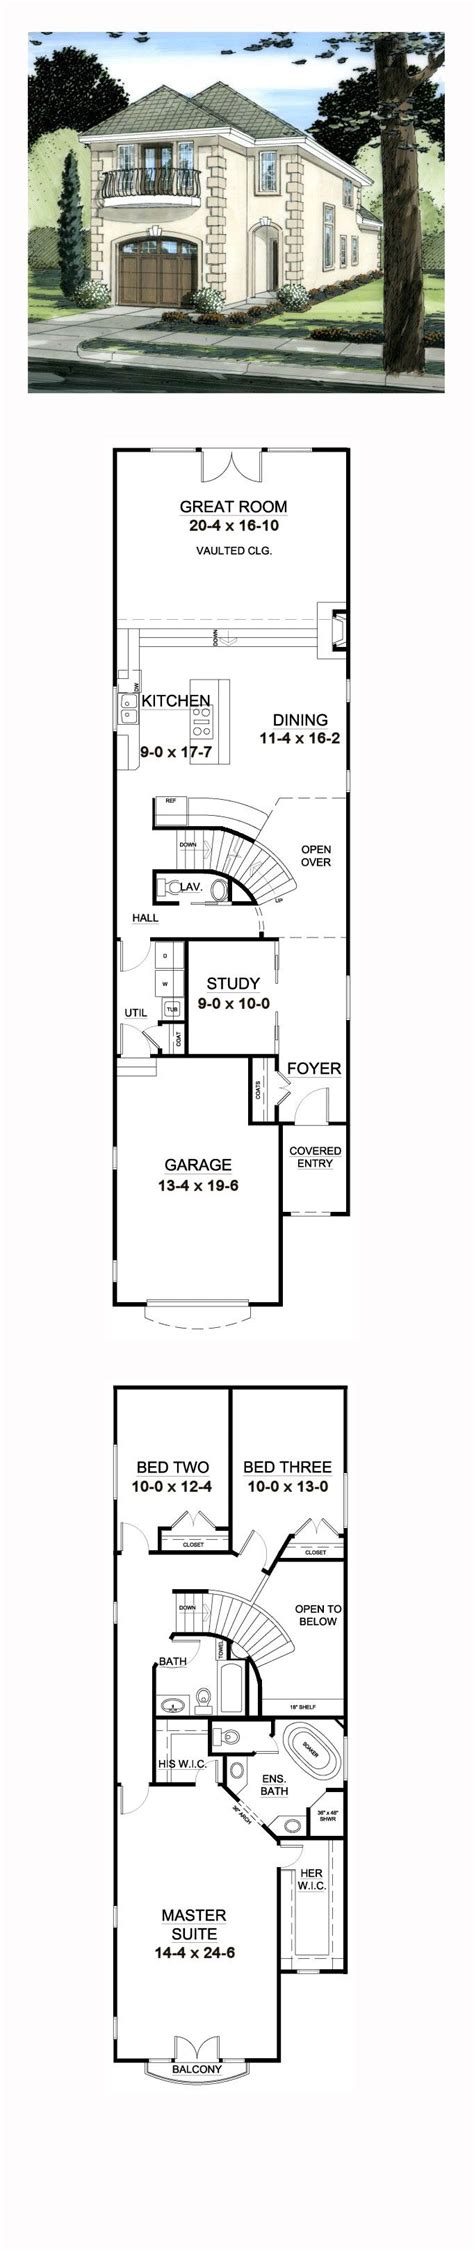 house plans for narrow lot the 25 best narrow house plans ideas on